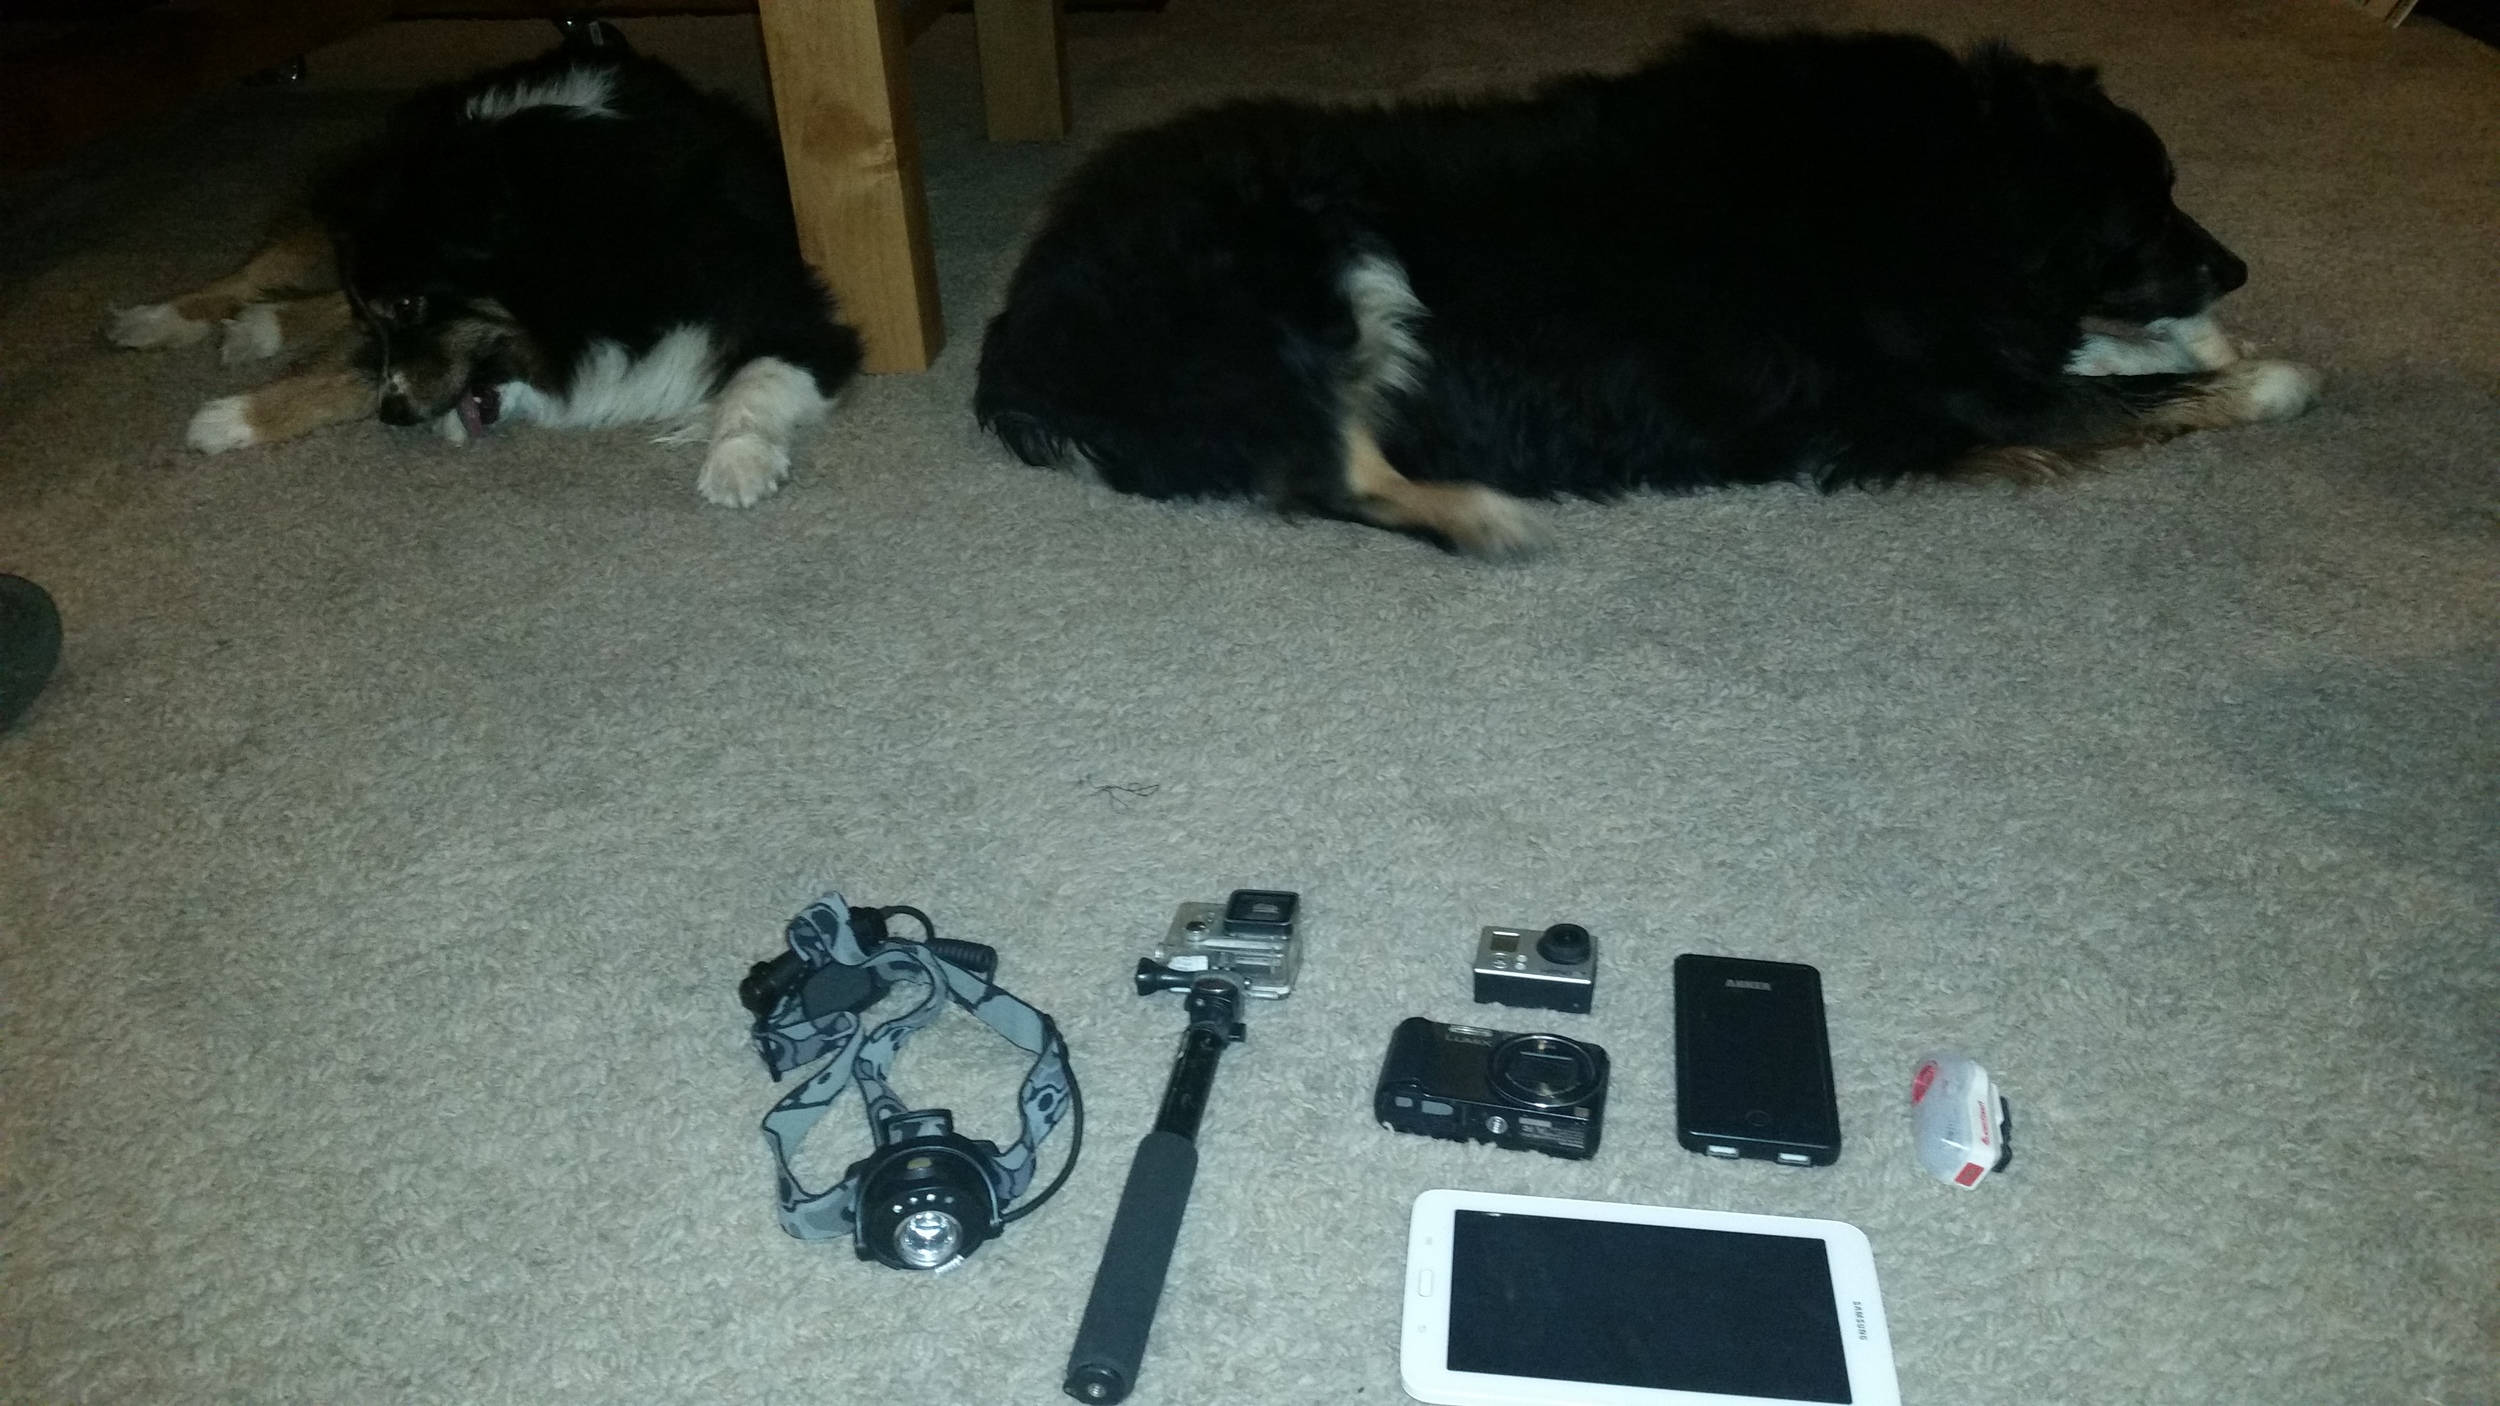 The electronics kit. Sorry no review for the dogs. Wait... they are cute! WOULD RECOMMEND!